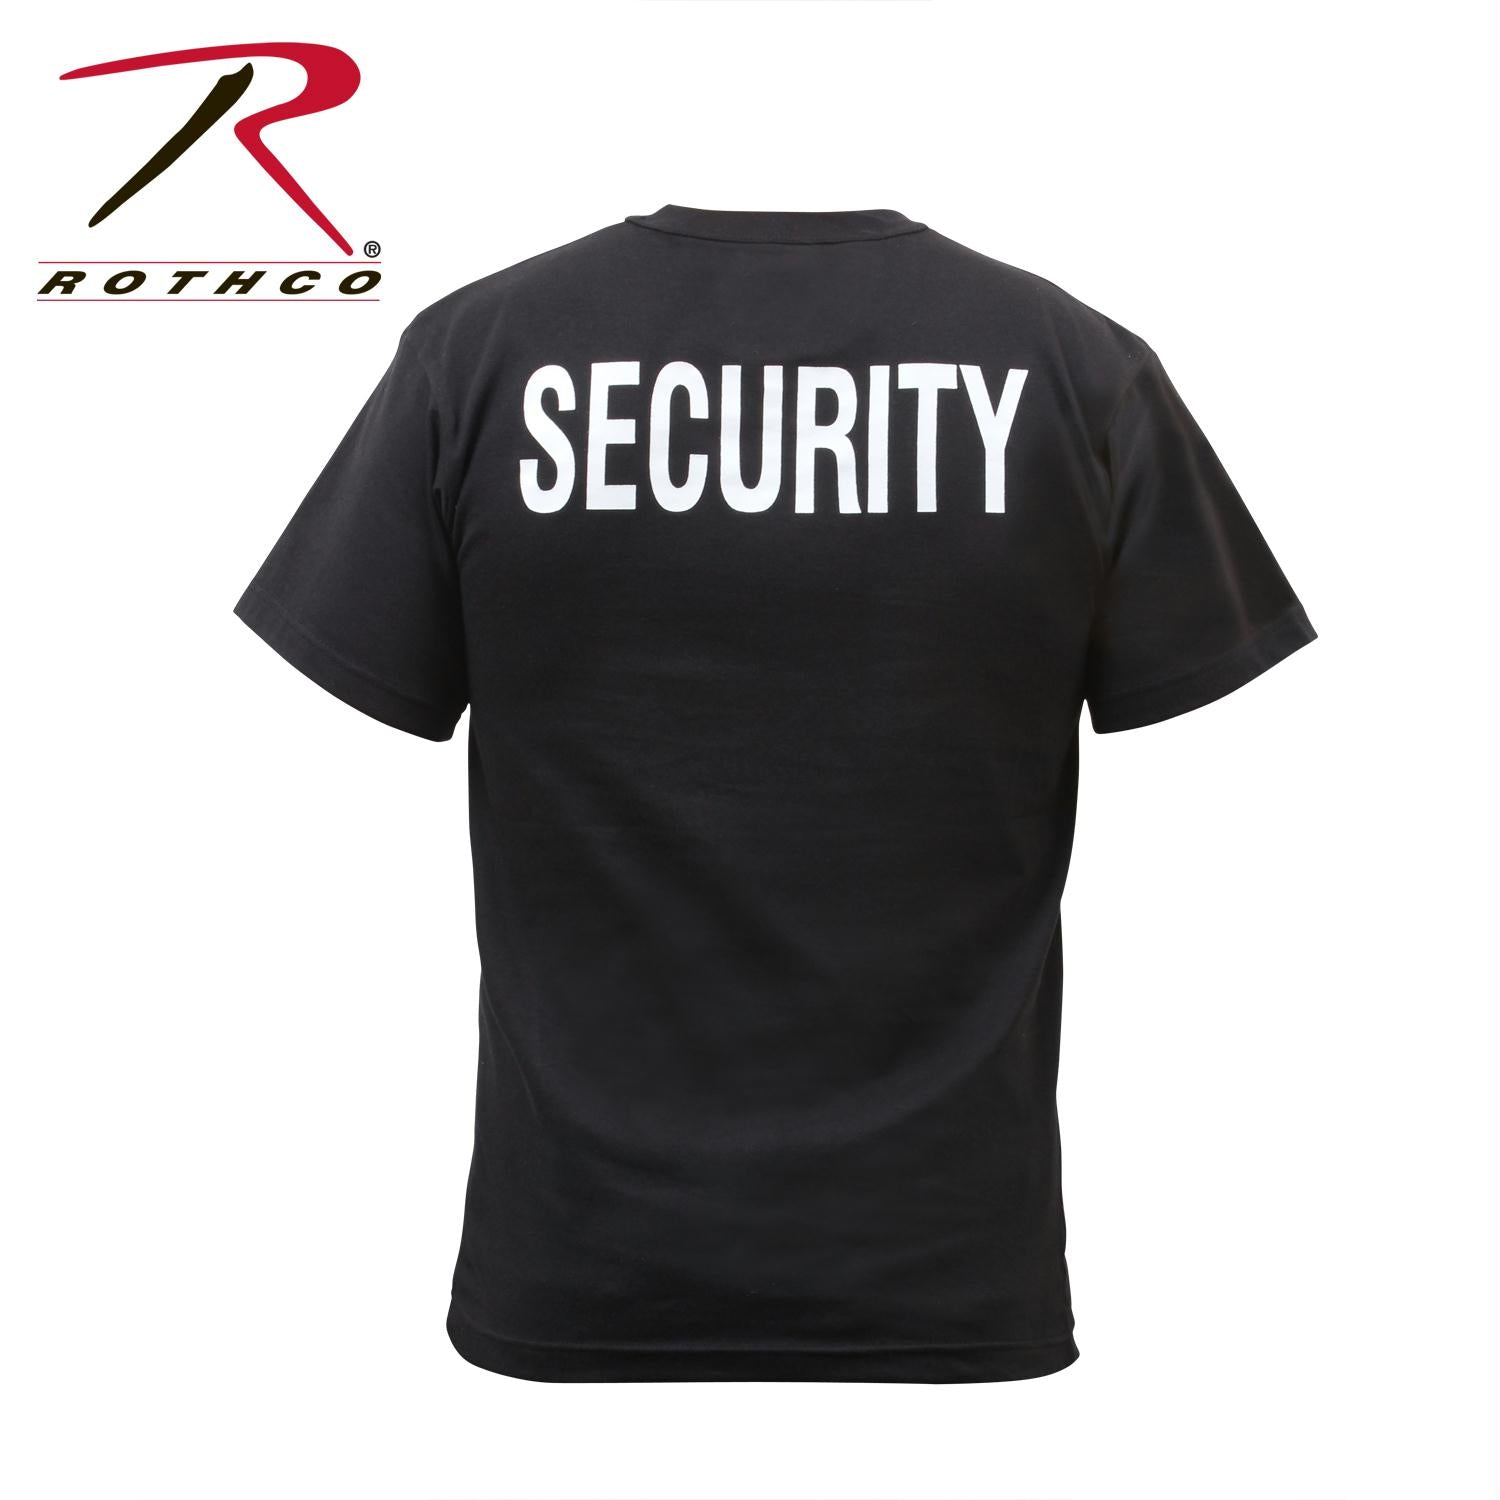 Rothco 2-Sided Security T-Shirt - S